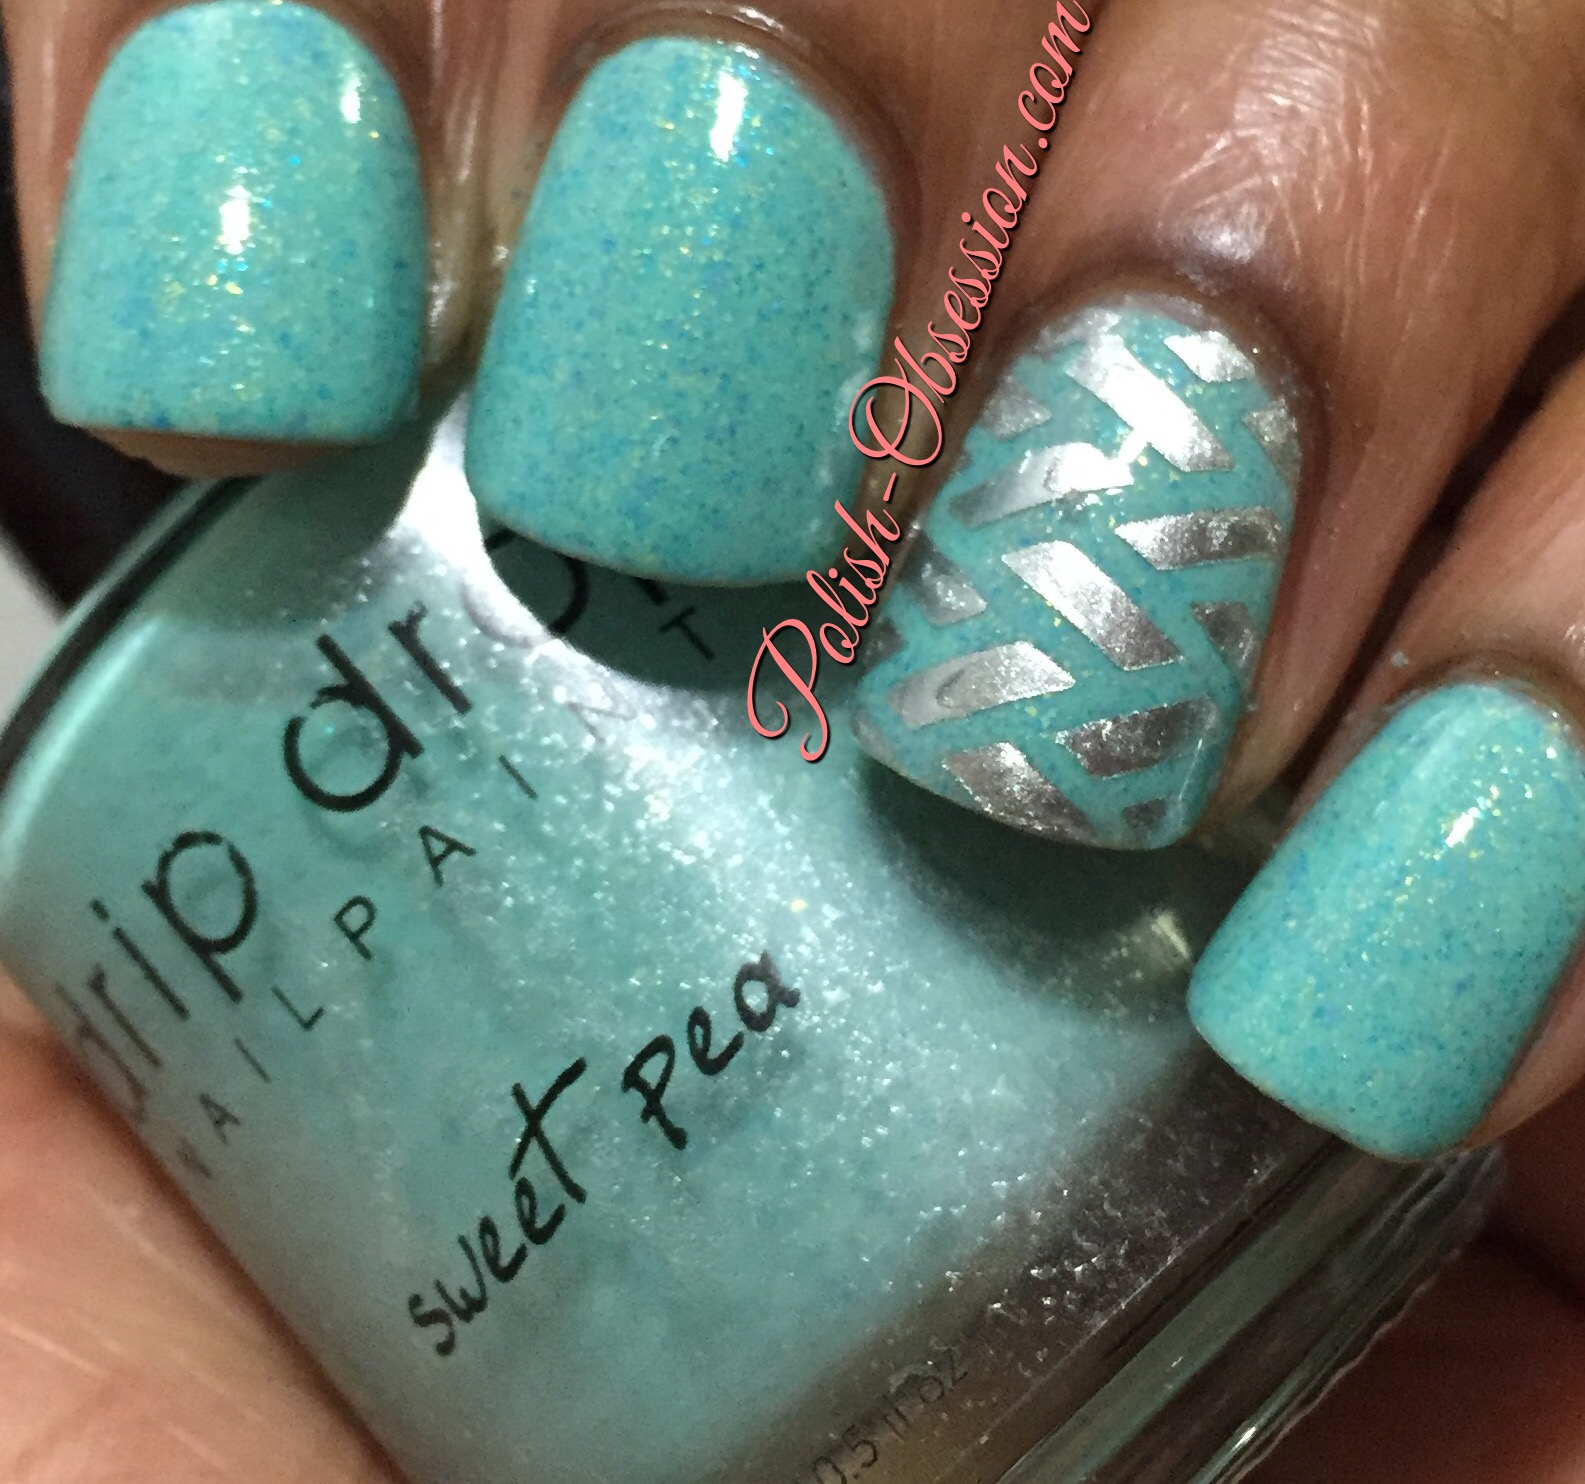 Sweet Pea Is A Mint Green With Turquoise And Holo Microglitters It Has Good Formula Opaque In Three Coats On My Accent Nail I Used Vinyls